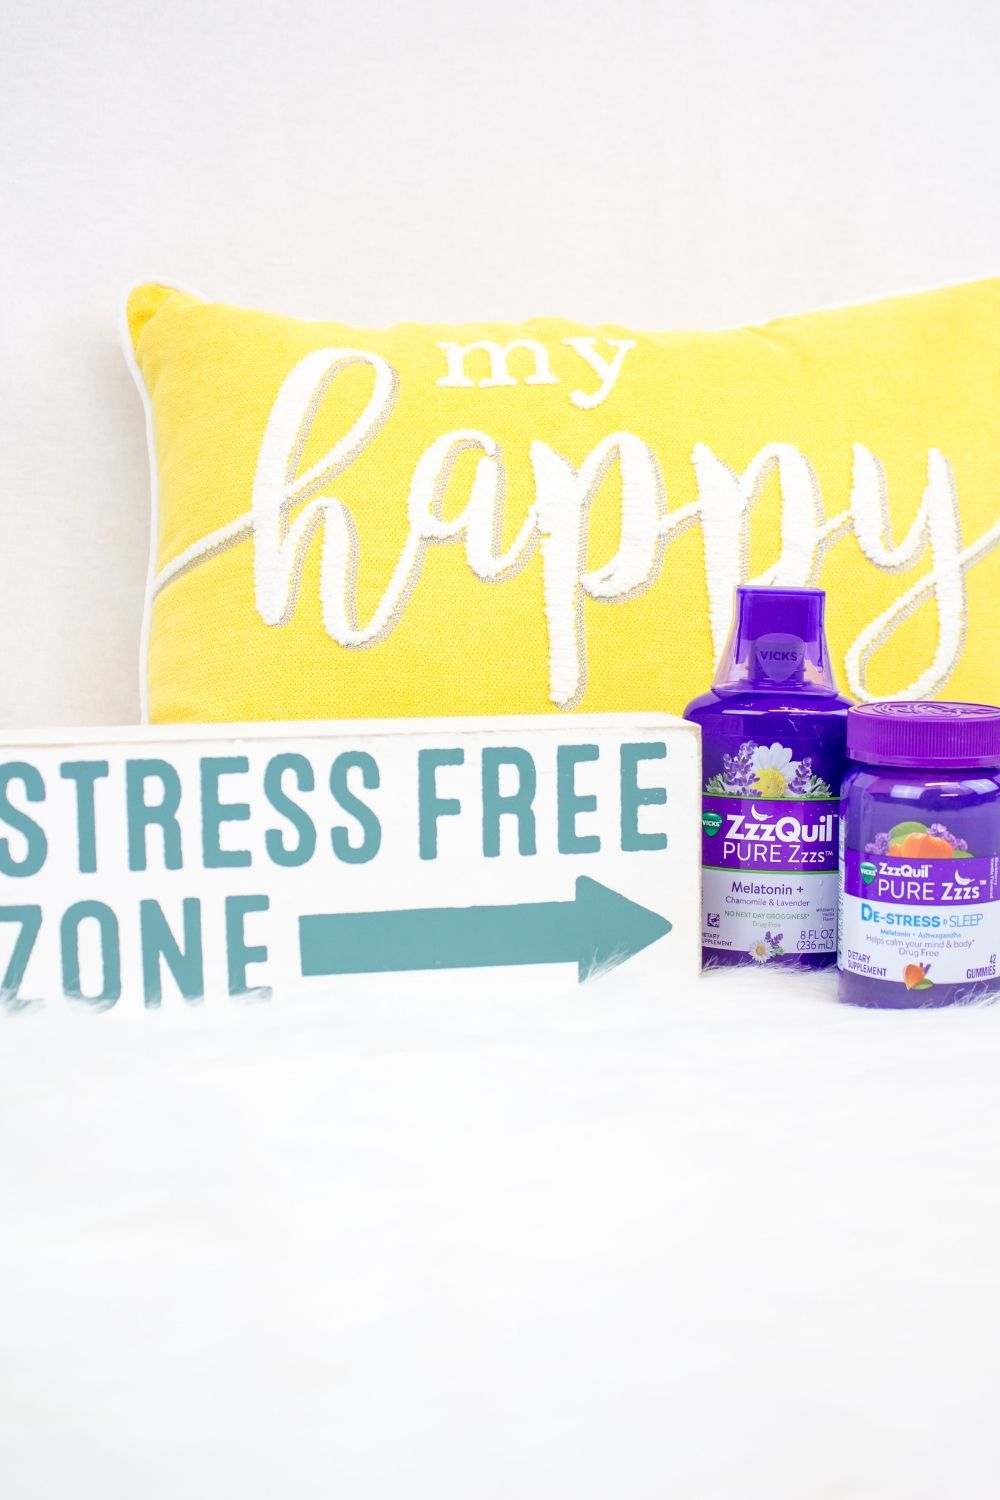 Get A Calm mind And Restful sleep With The Newest Products From ZzzQuil